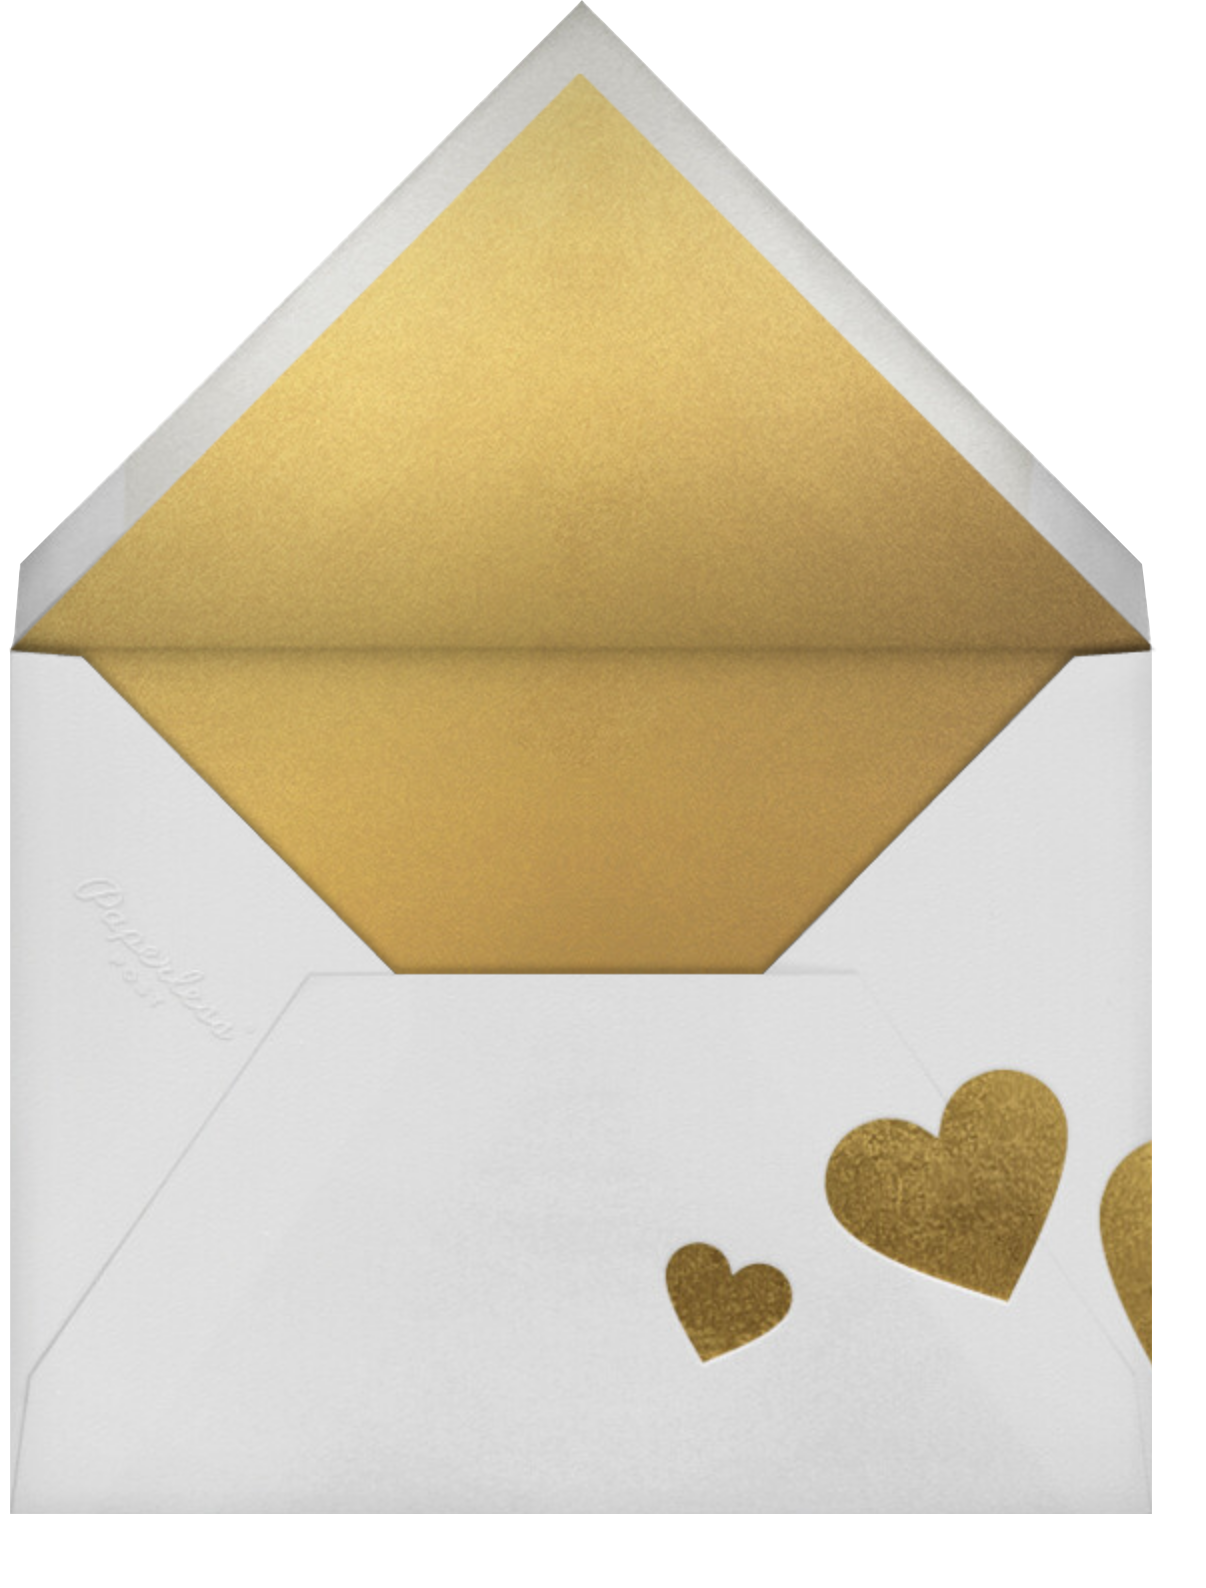 Snapshot - Gold Kiss - Paperless Post - Valentine's Day - envelope back